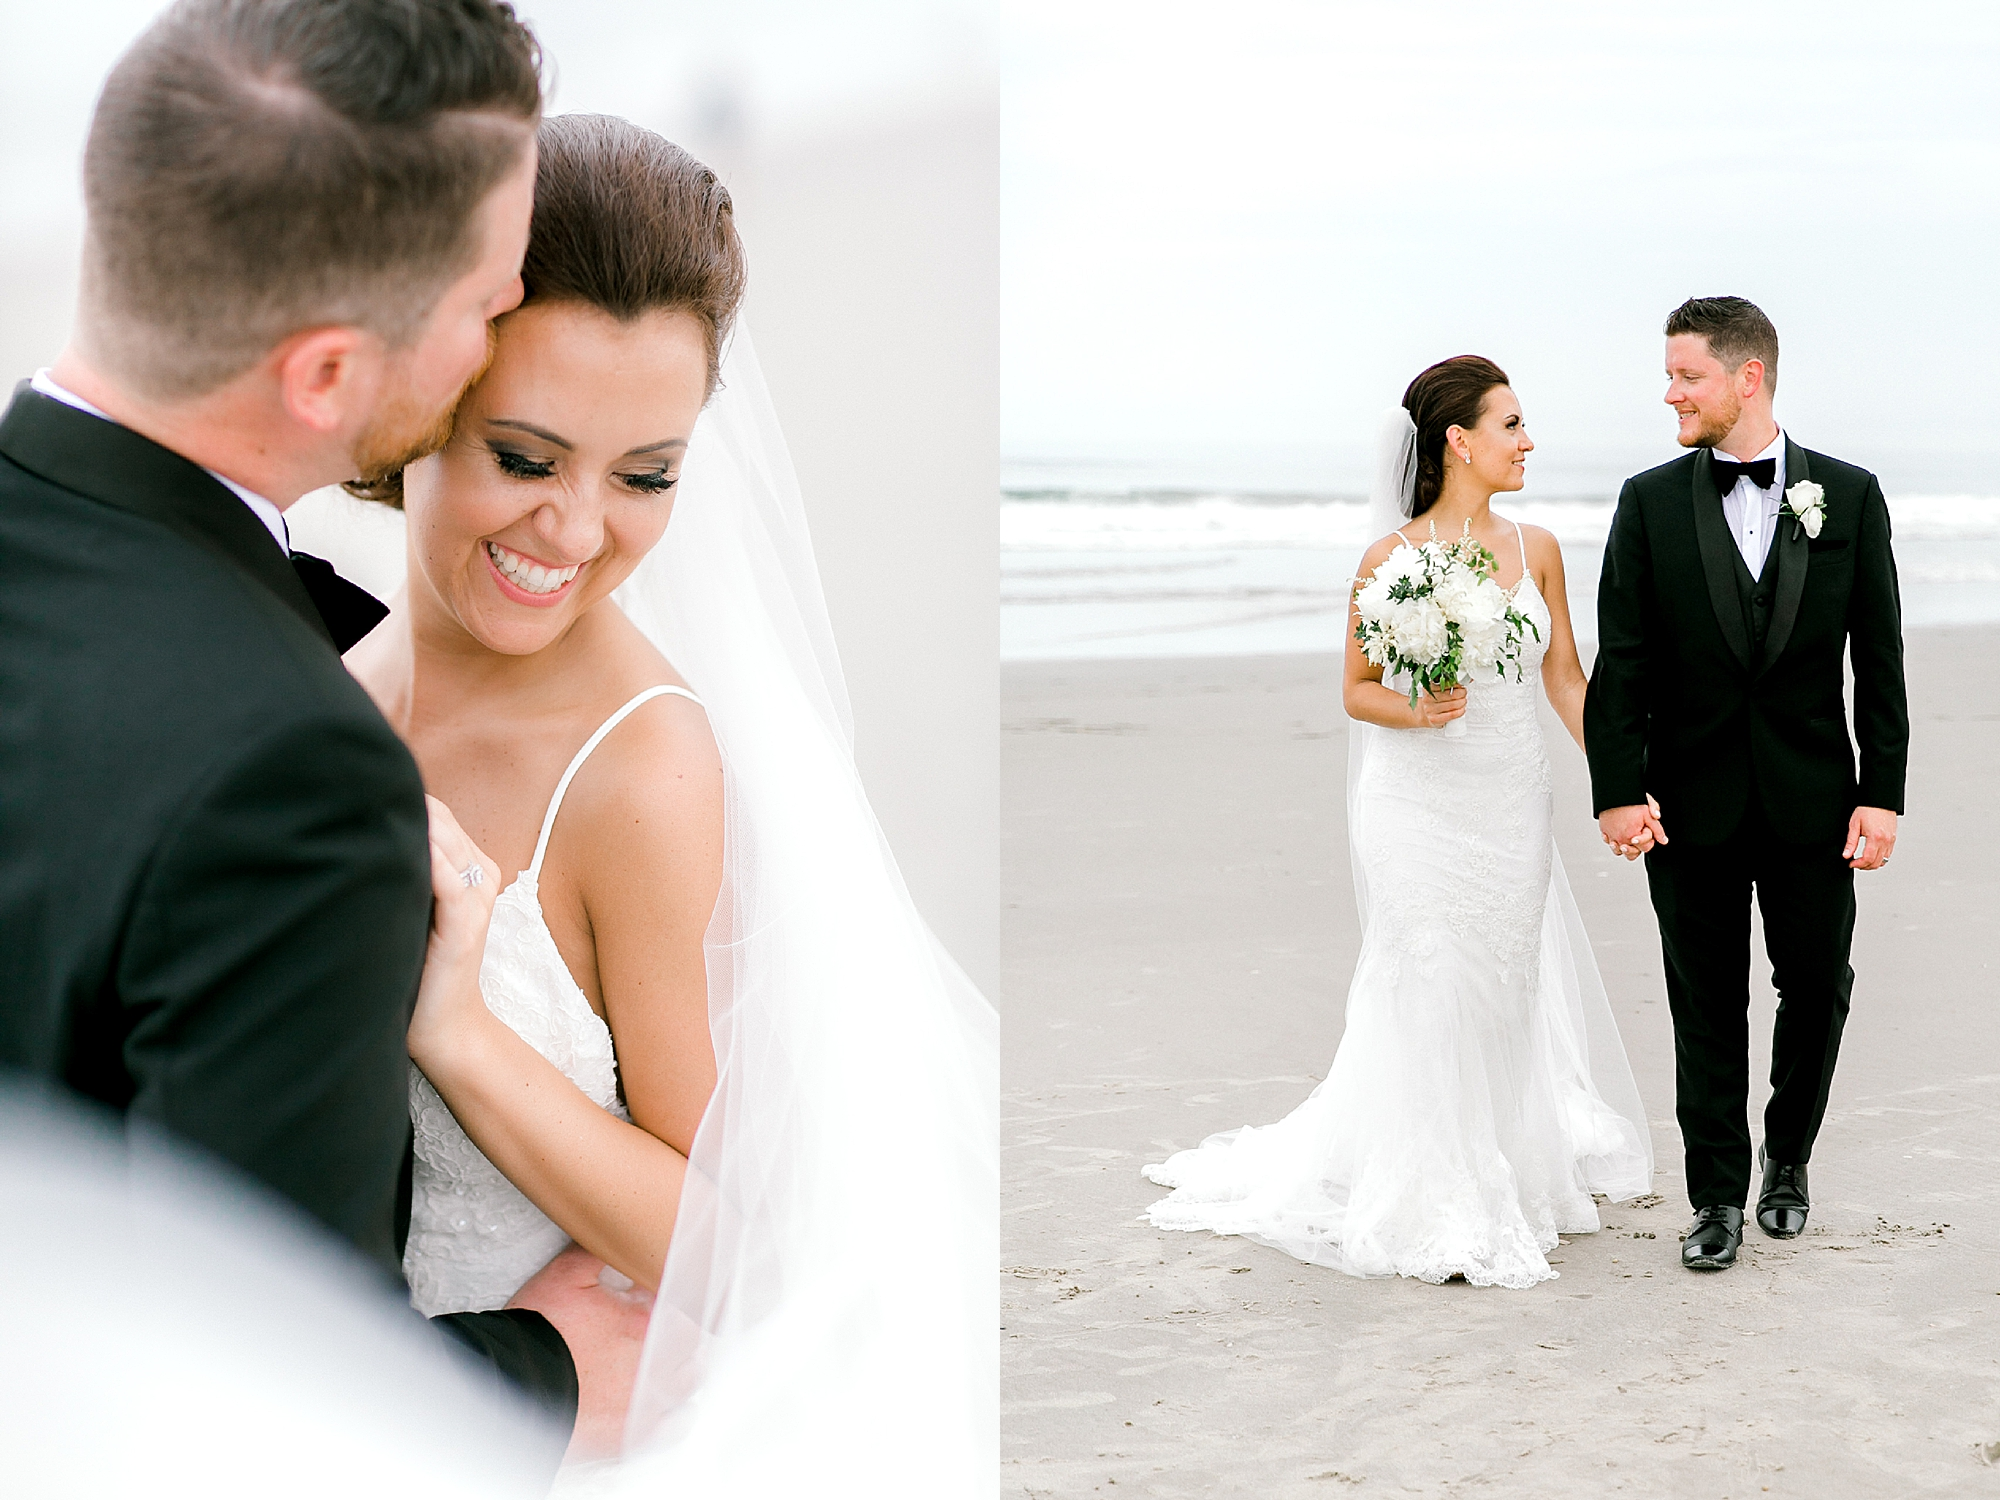 Candid and Stylish South Jersey Wedding Photography by Magdalena Studios 0045